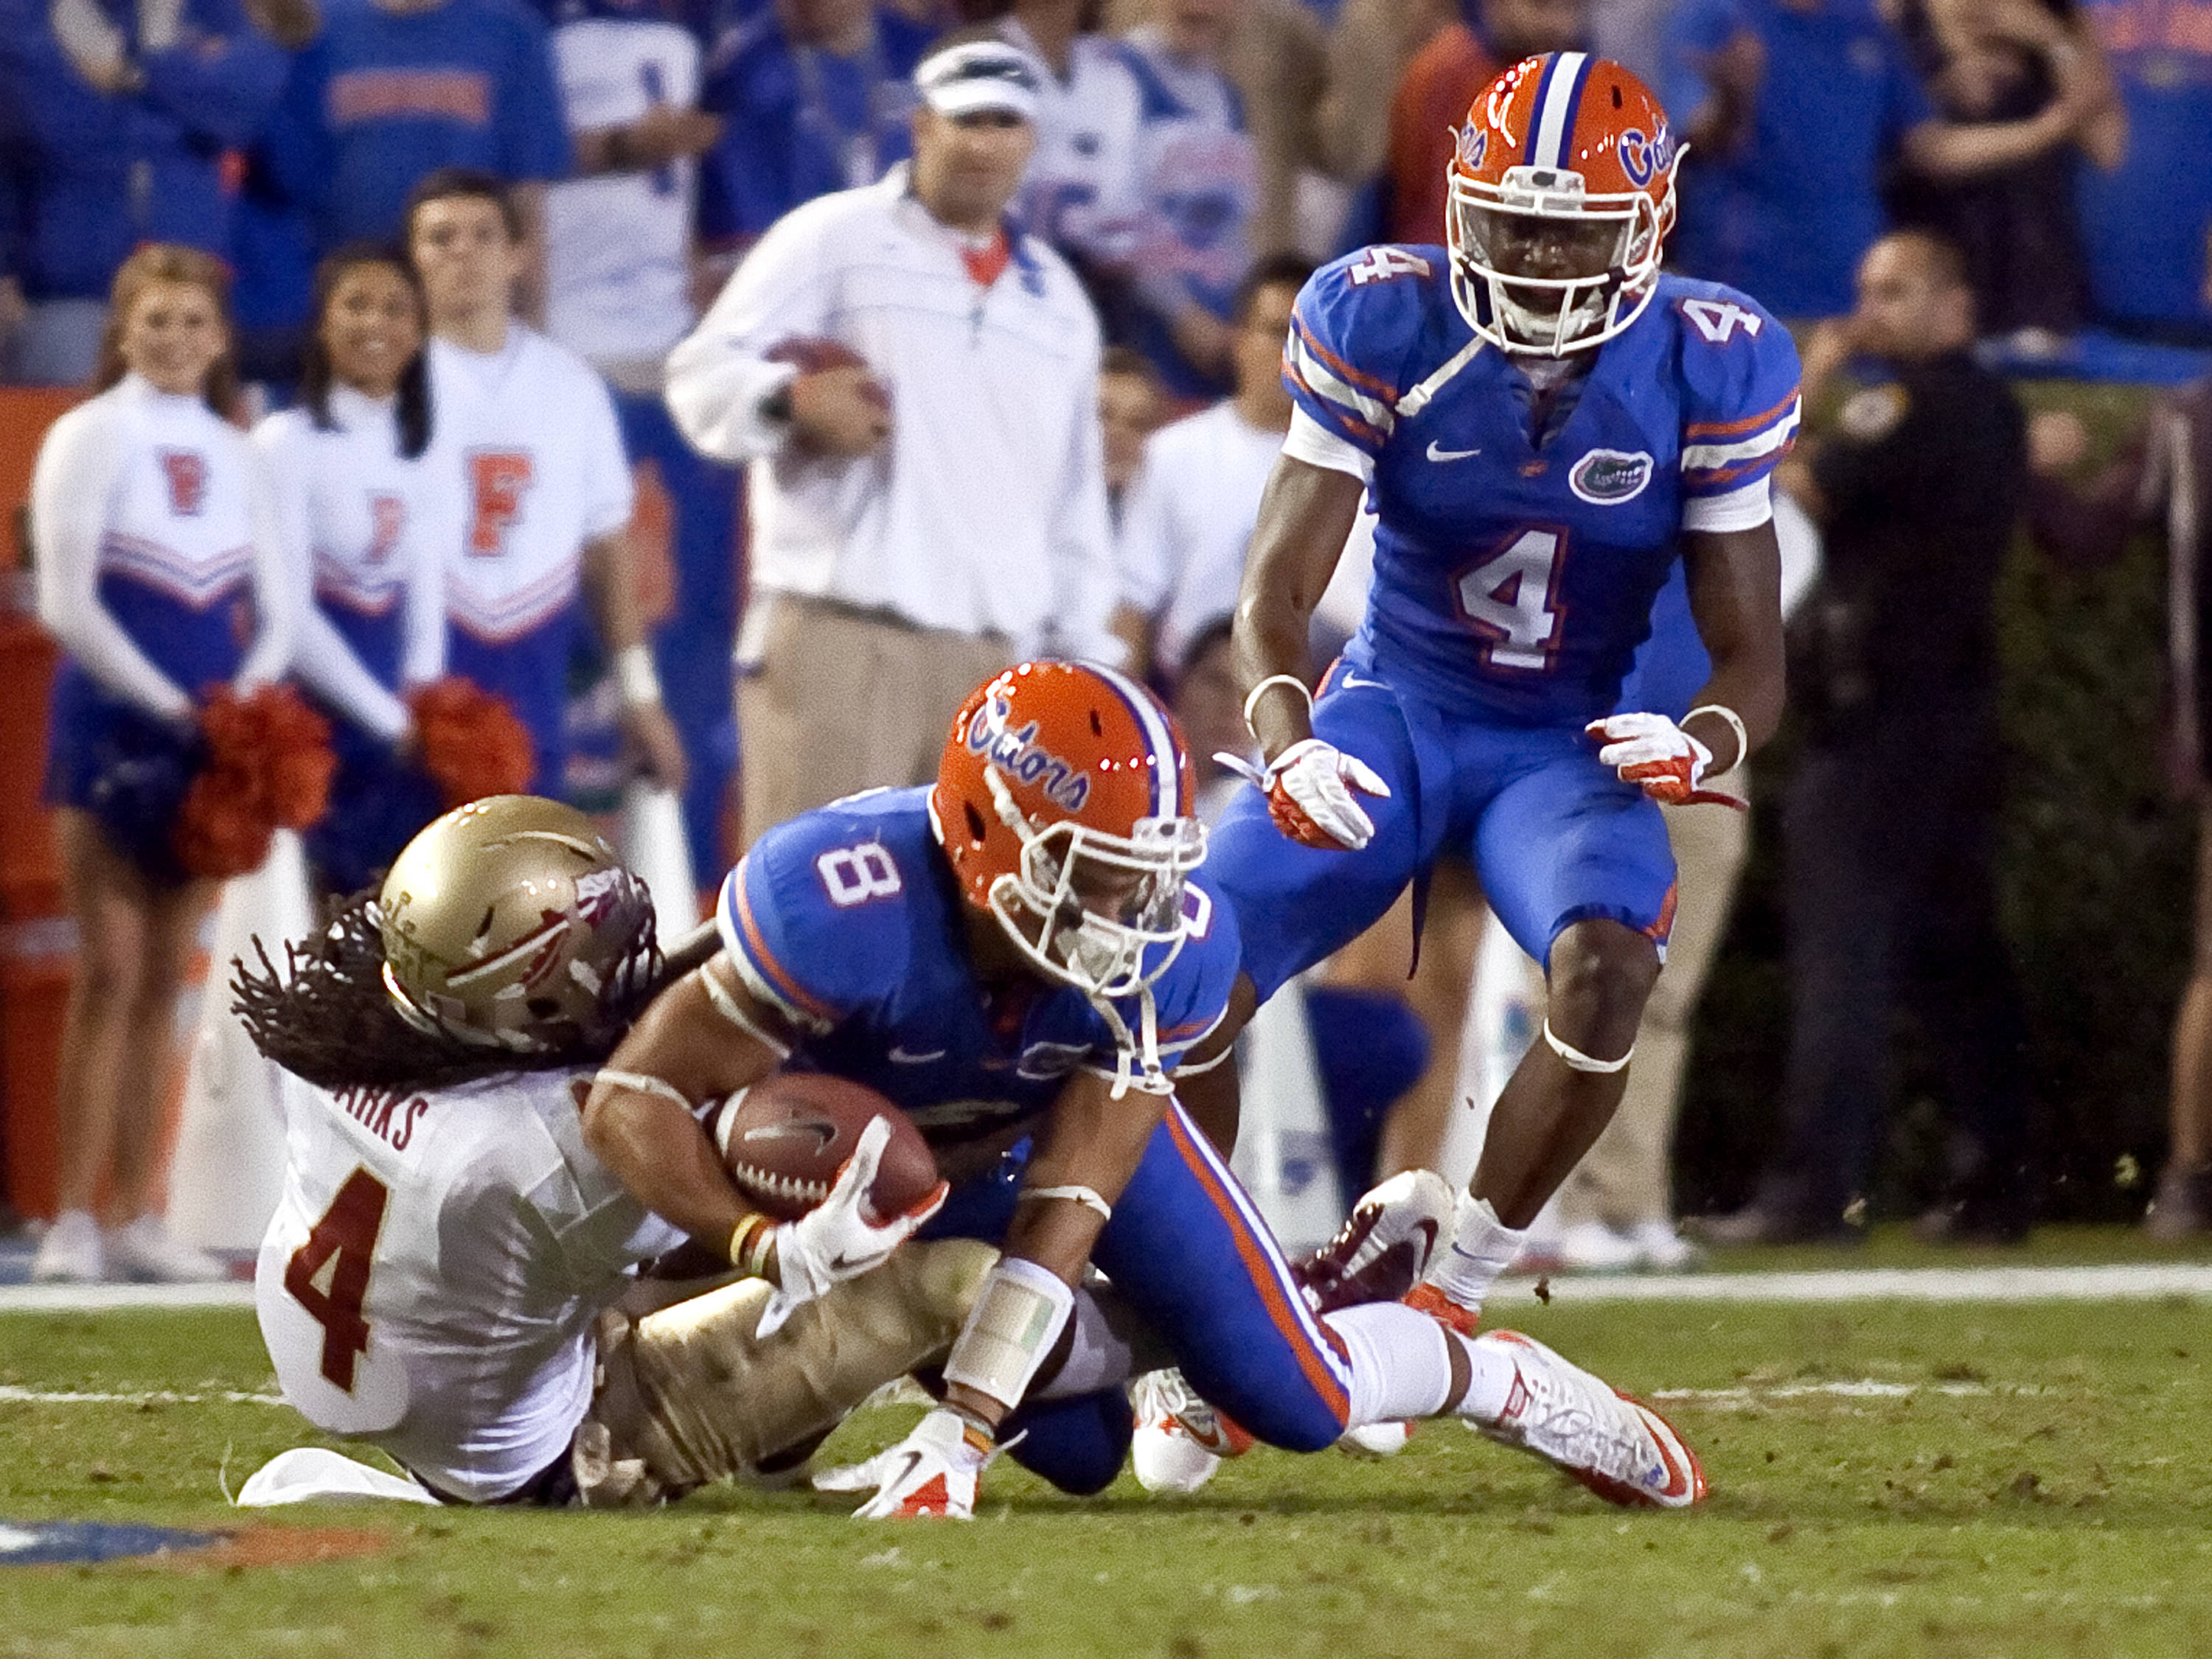 Terrance Parks (4) with a huge tackle for a loss stopping a Florida drive, FSU vs Florida, 11/26/2011